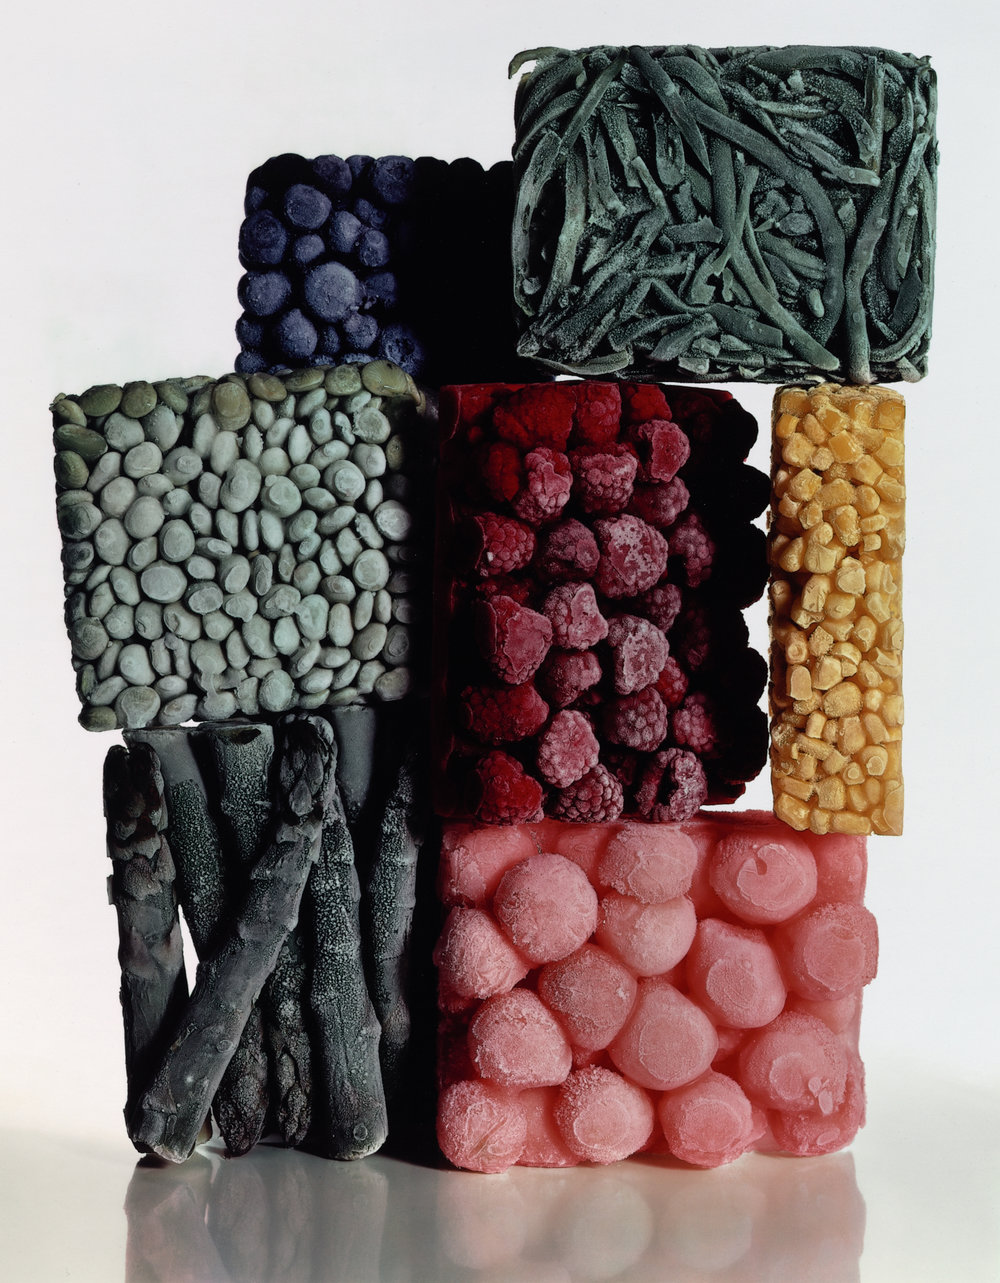 Frozen Foods with String Beans , New York, 1977 Dye transfer print © Condé Nast